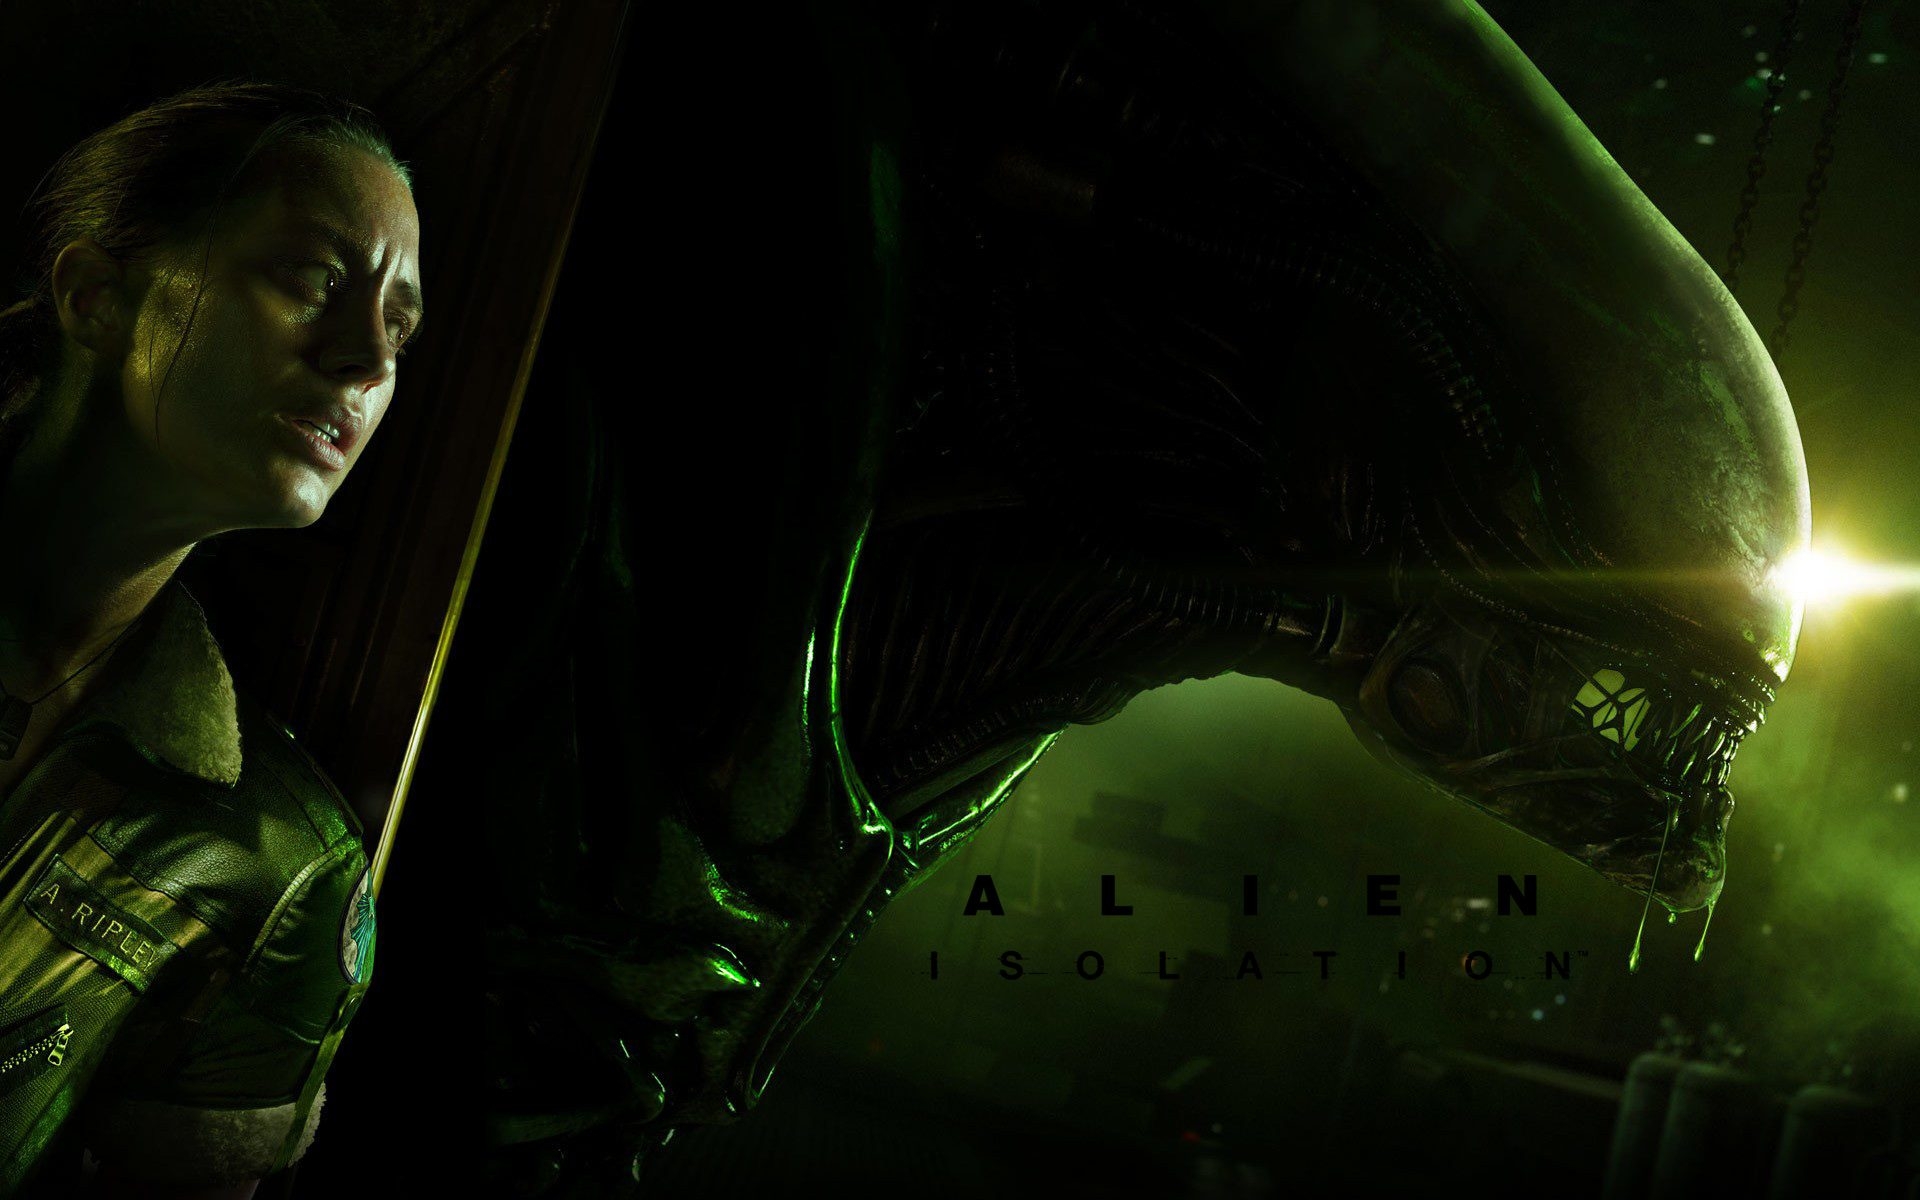 Alien Isolation art.